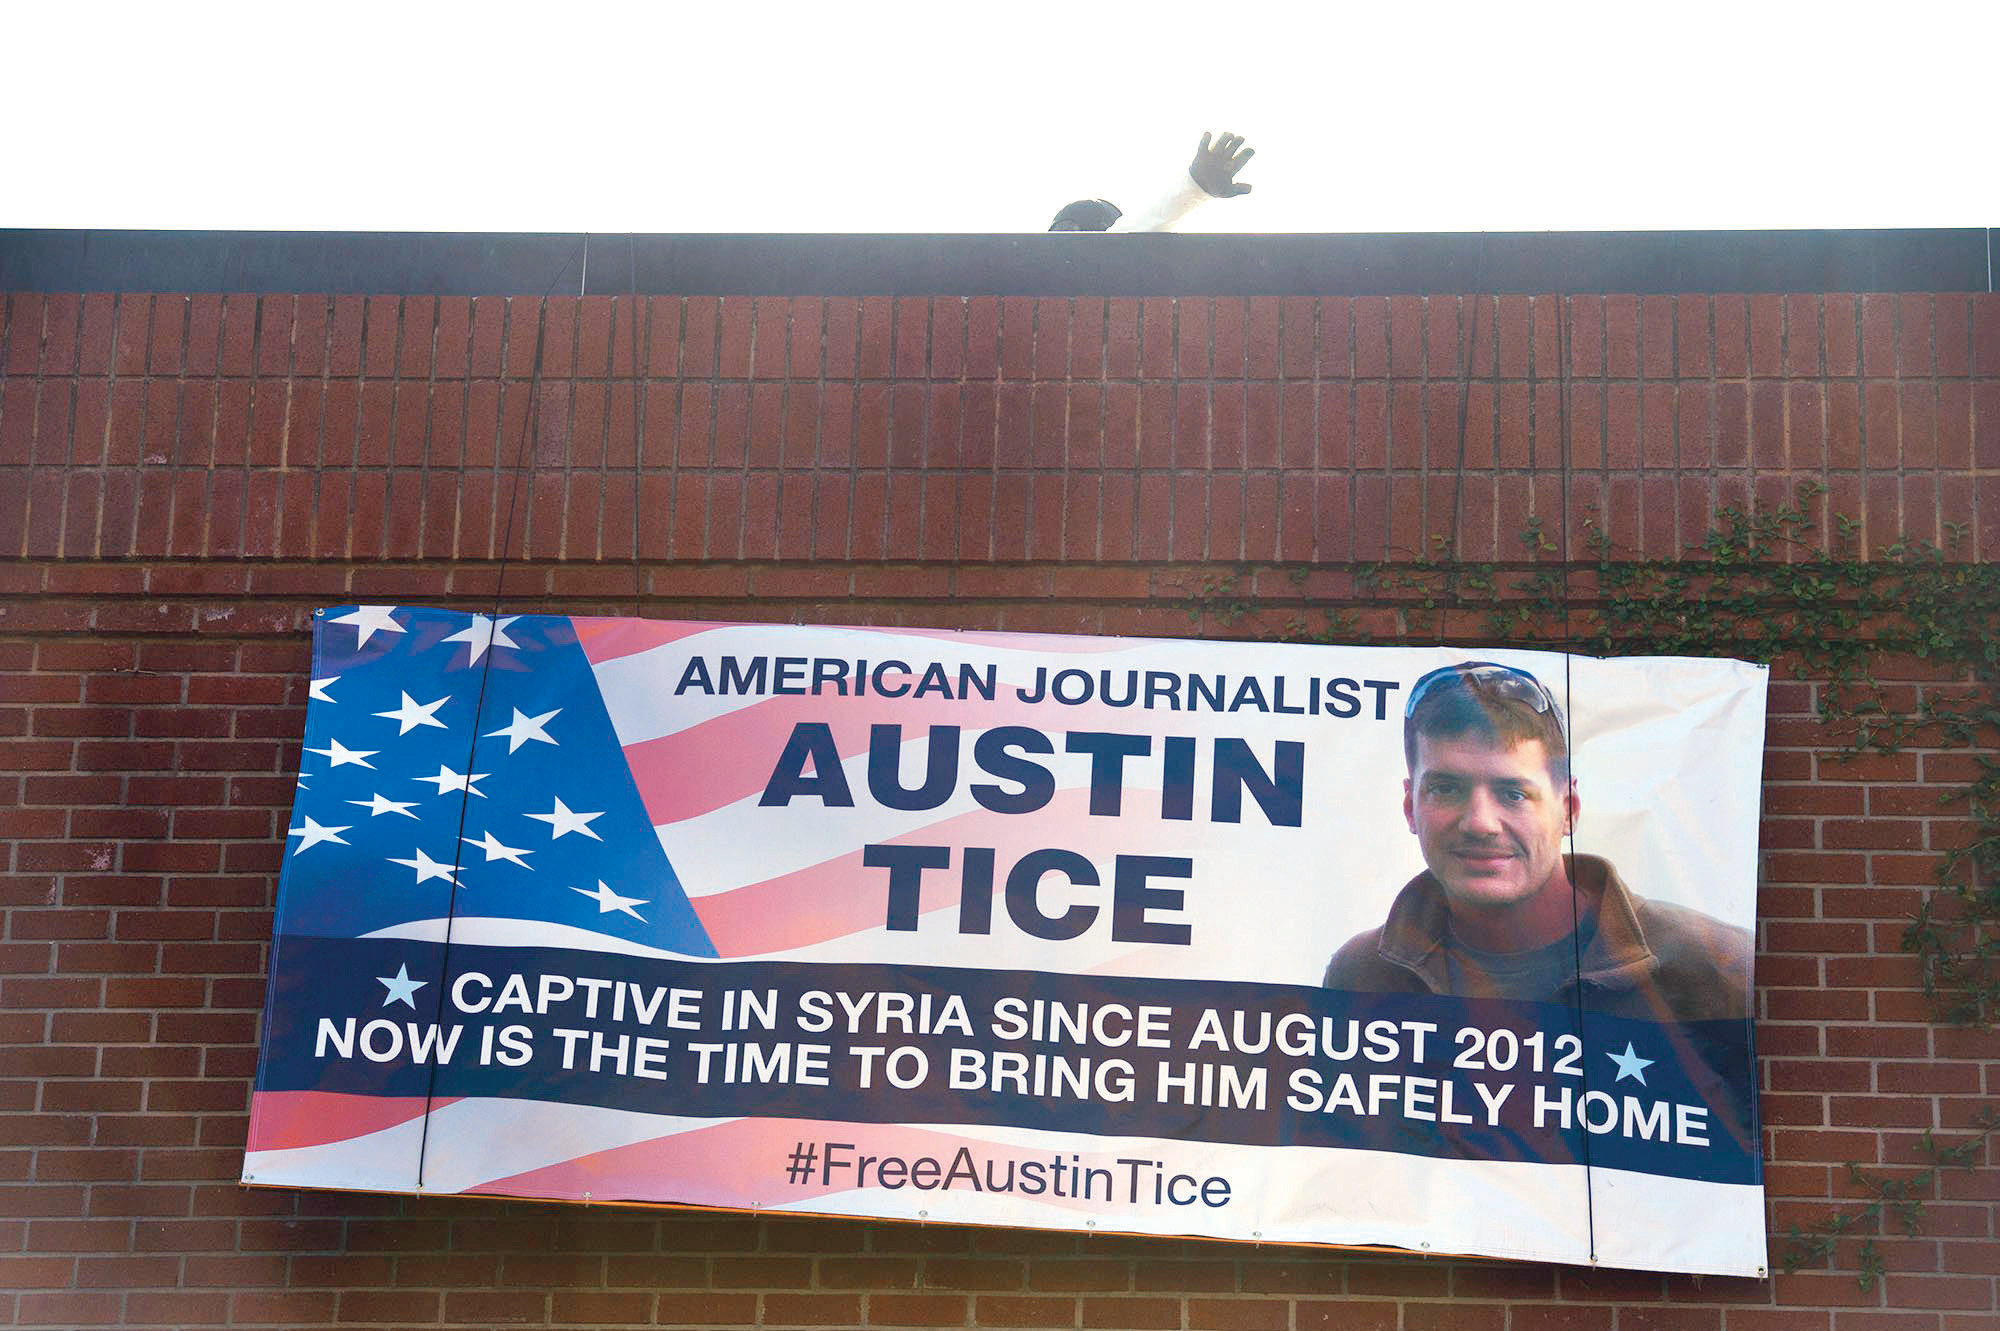 McClatchy Co. displayed a banner Monday outside its corporate headquarters at The Sacramento Bee to honor kidnapped newsman Austin Tice and draw attention to his plight Monday, August 14, 2017 in Sacramento, Calif.